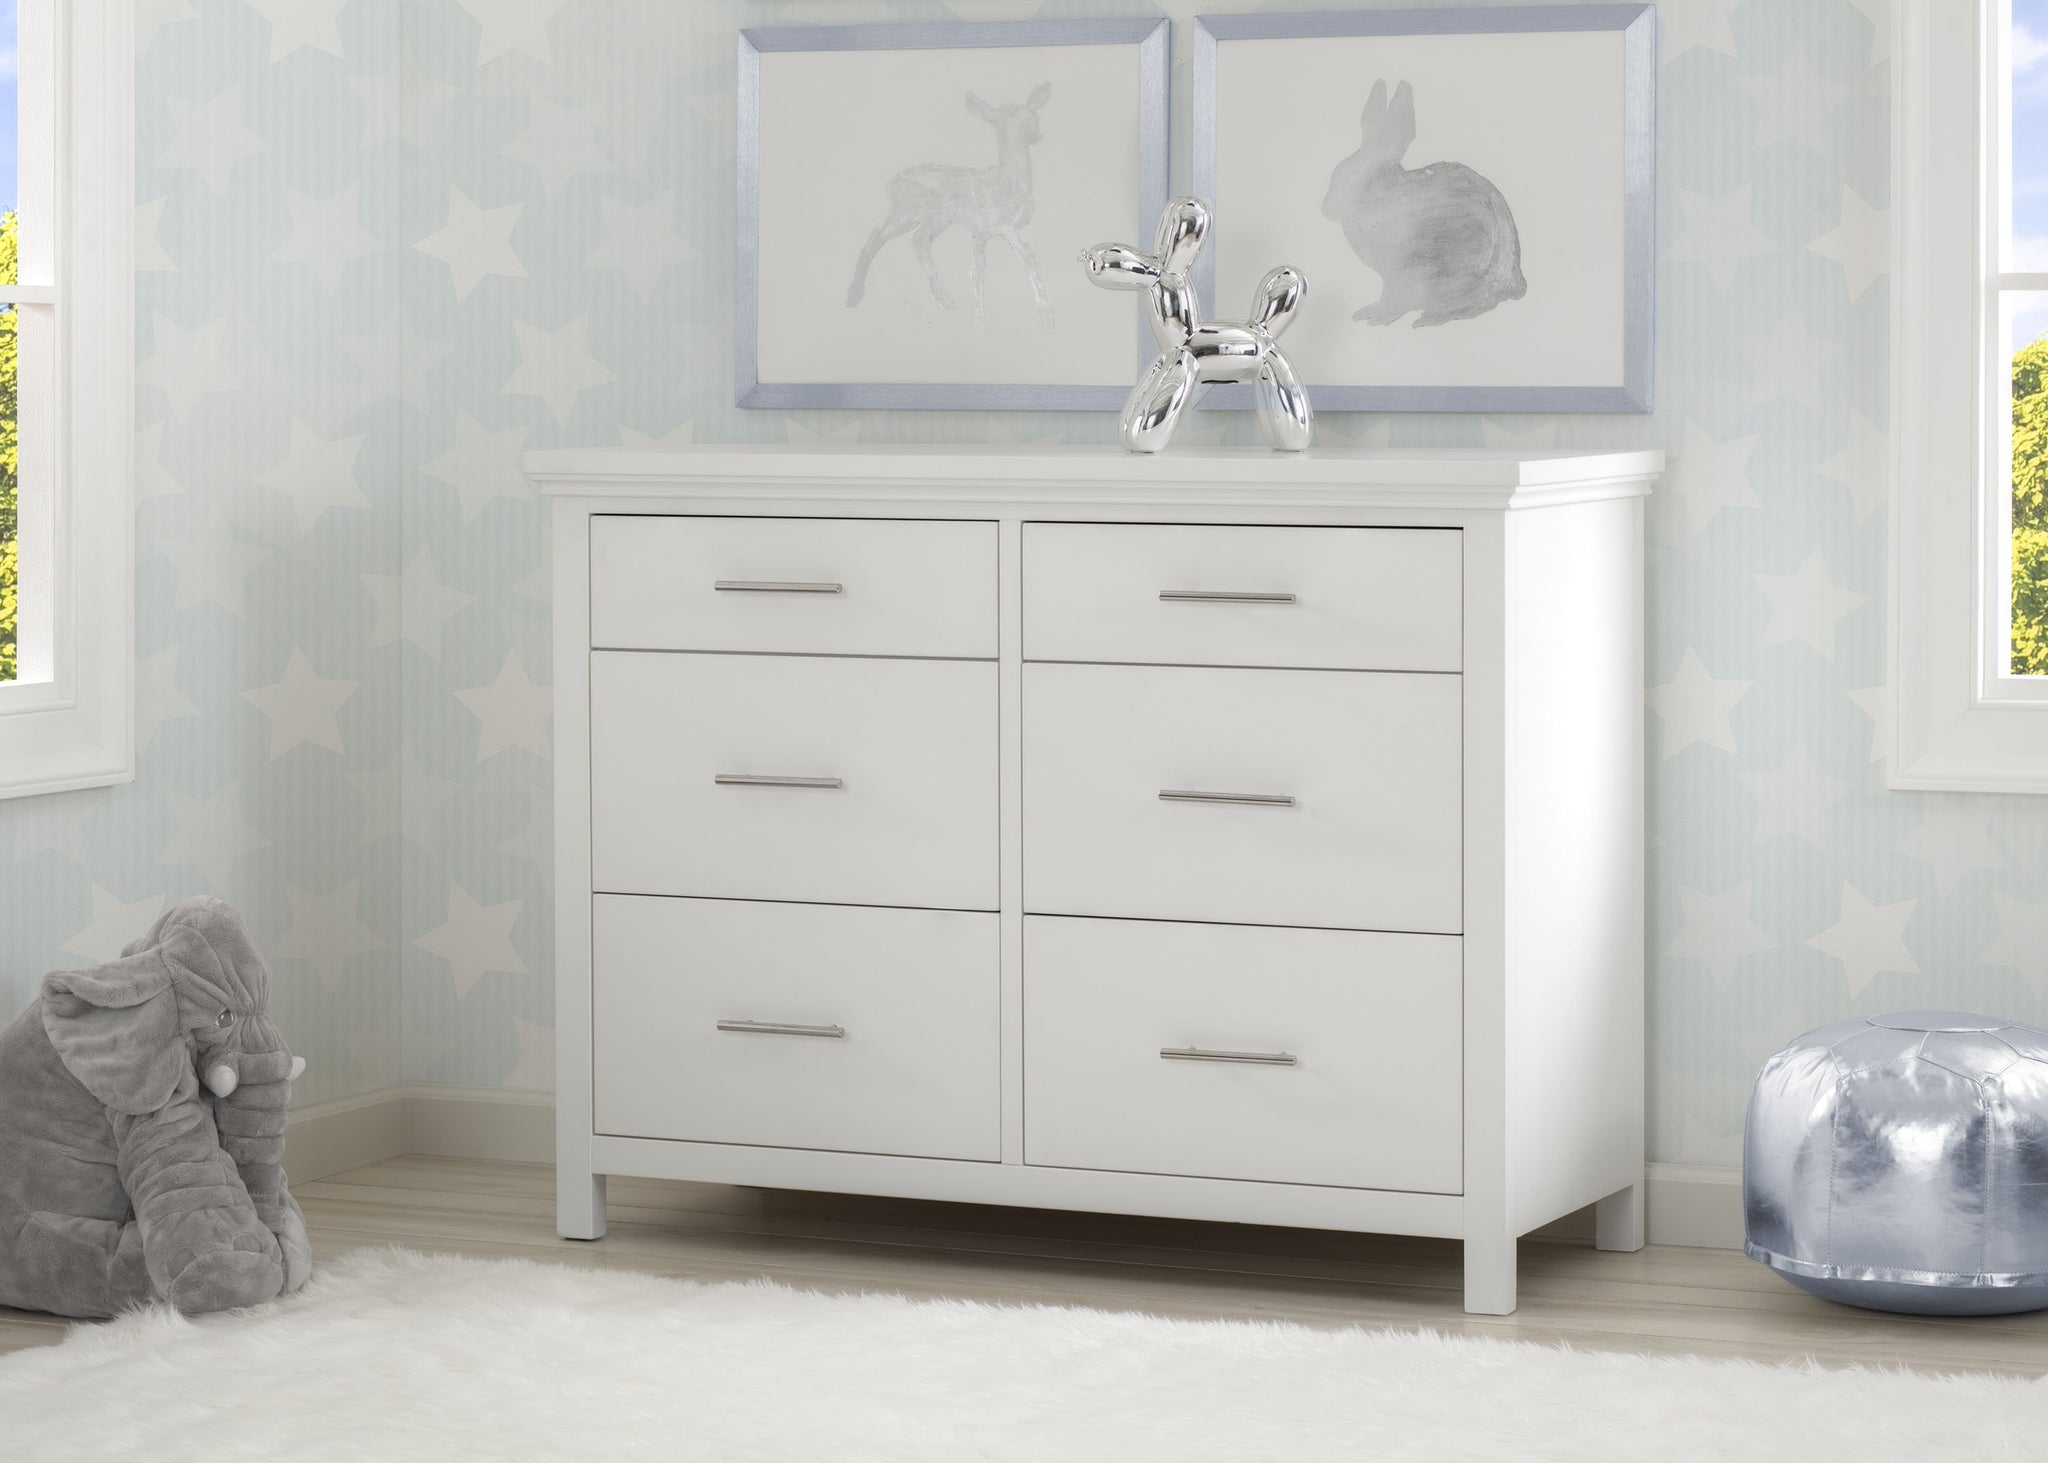 Simmons Kids Bianca White (130) Avery 6 Drawer Dresser with Changing Top, Room View